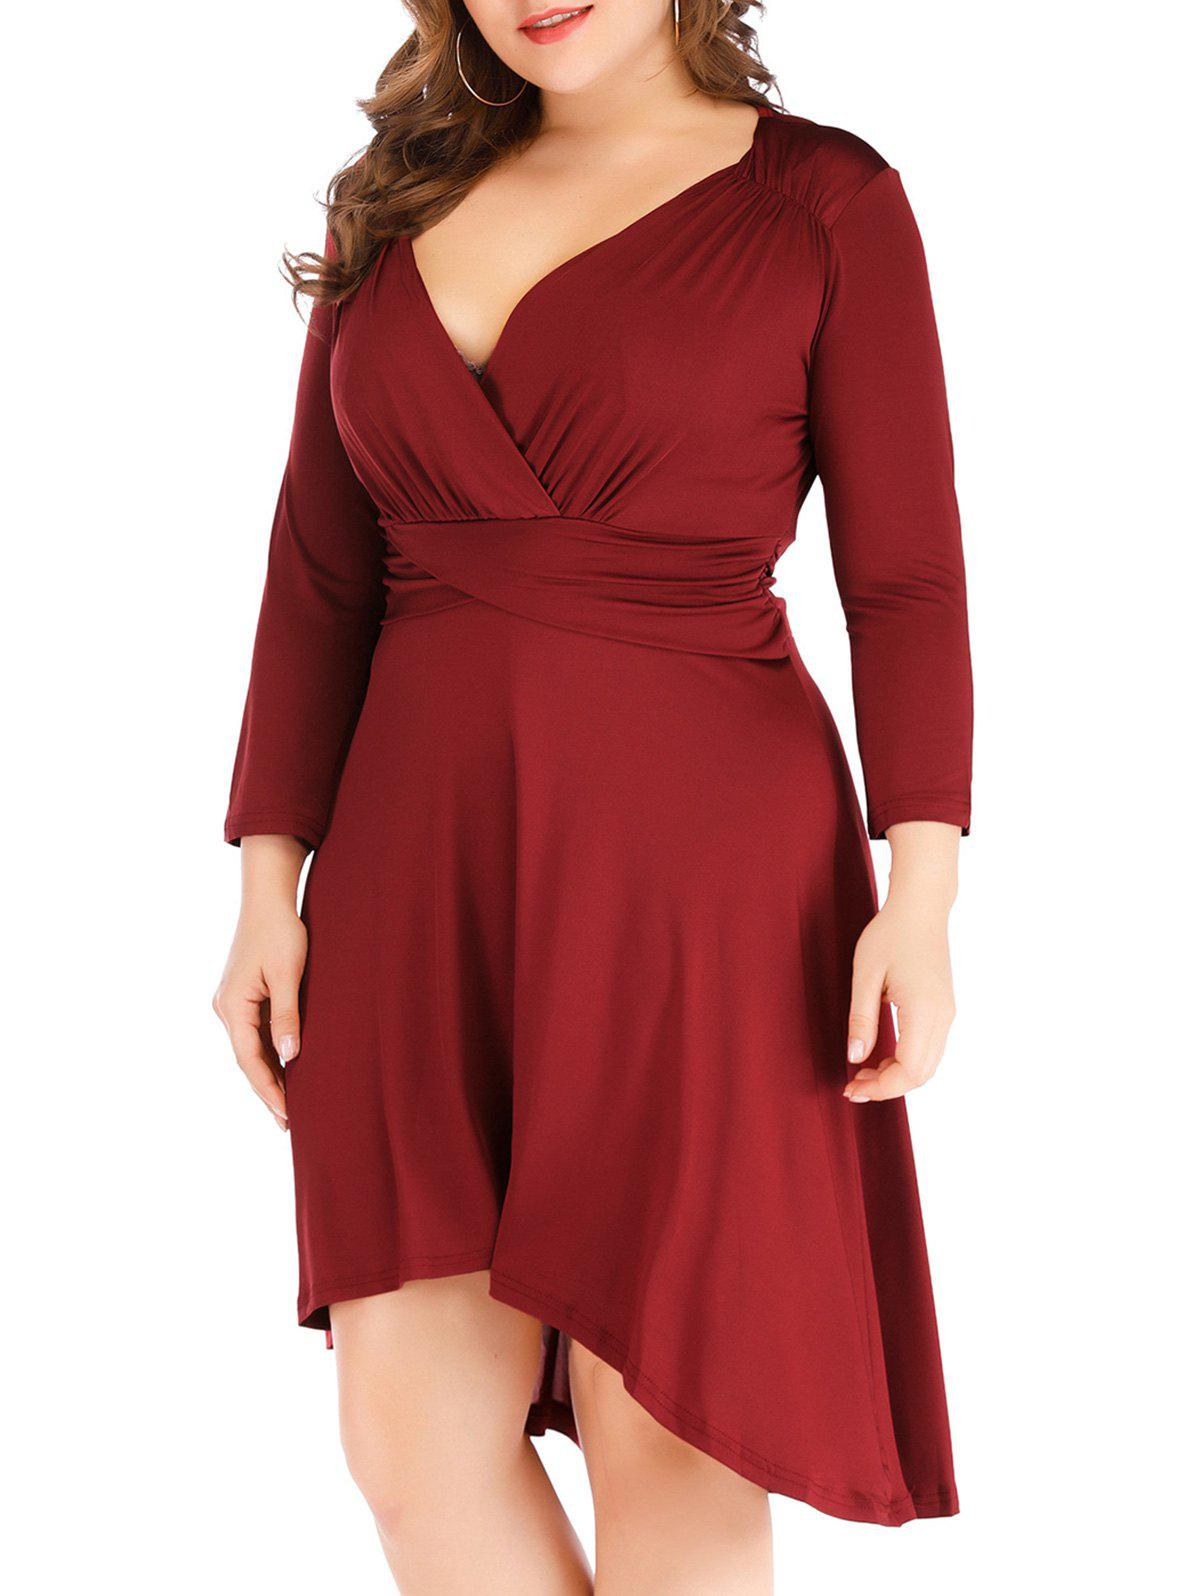 Cross High Low taille froncée Taille Plus Surplice Robe - Rouge Vineux 4X